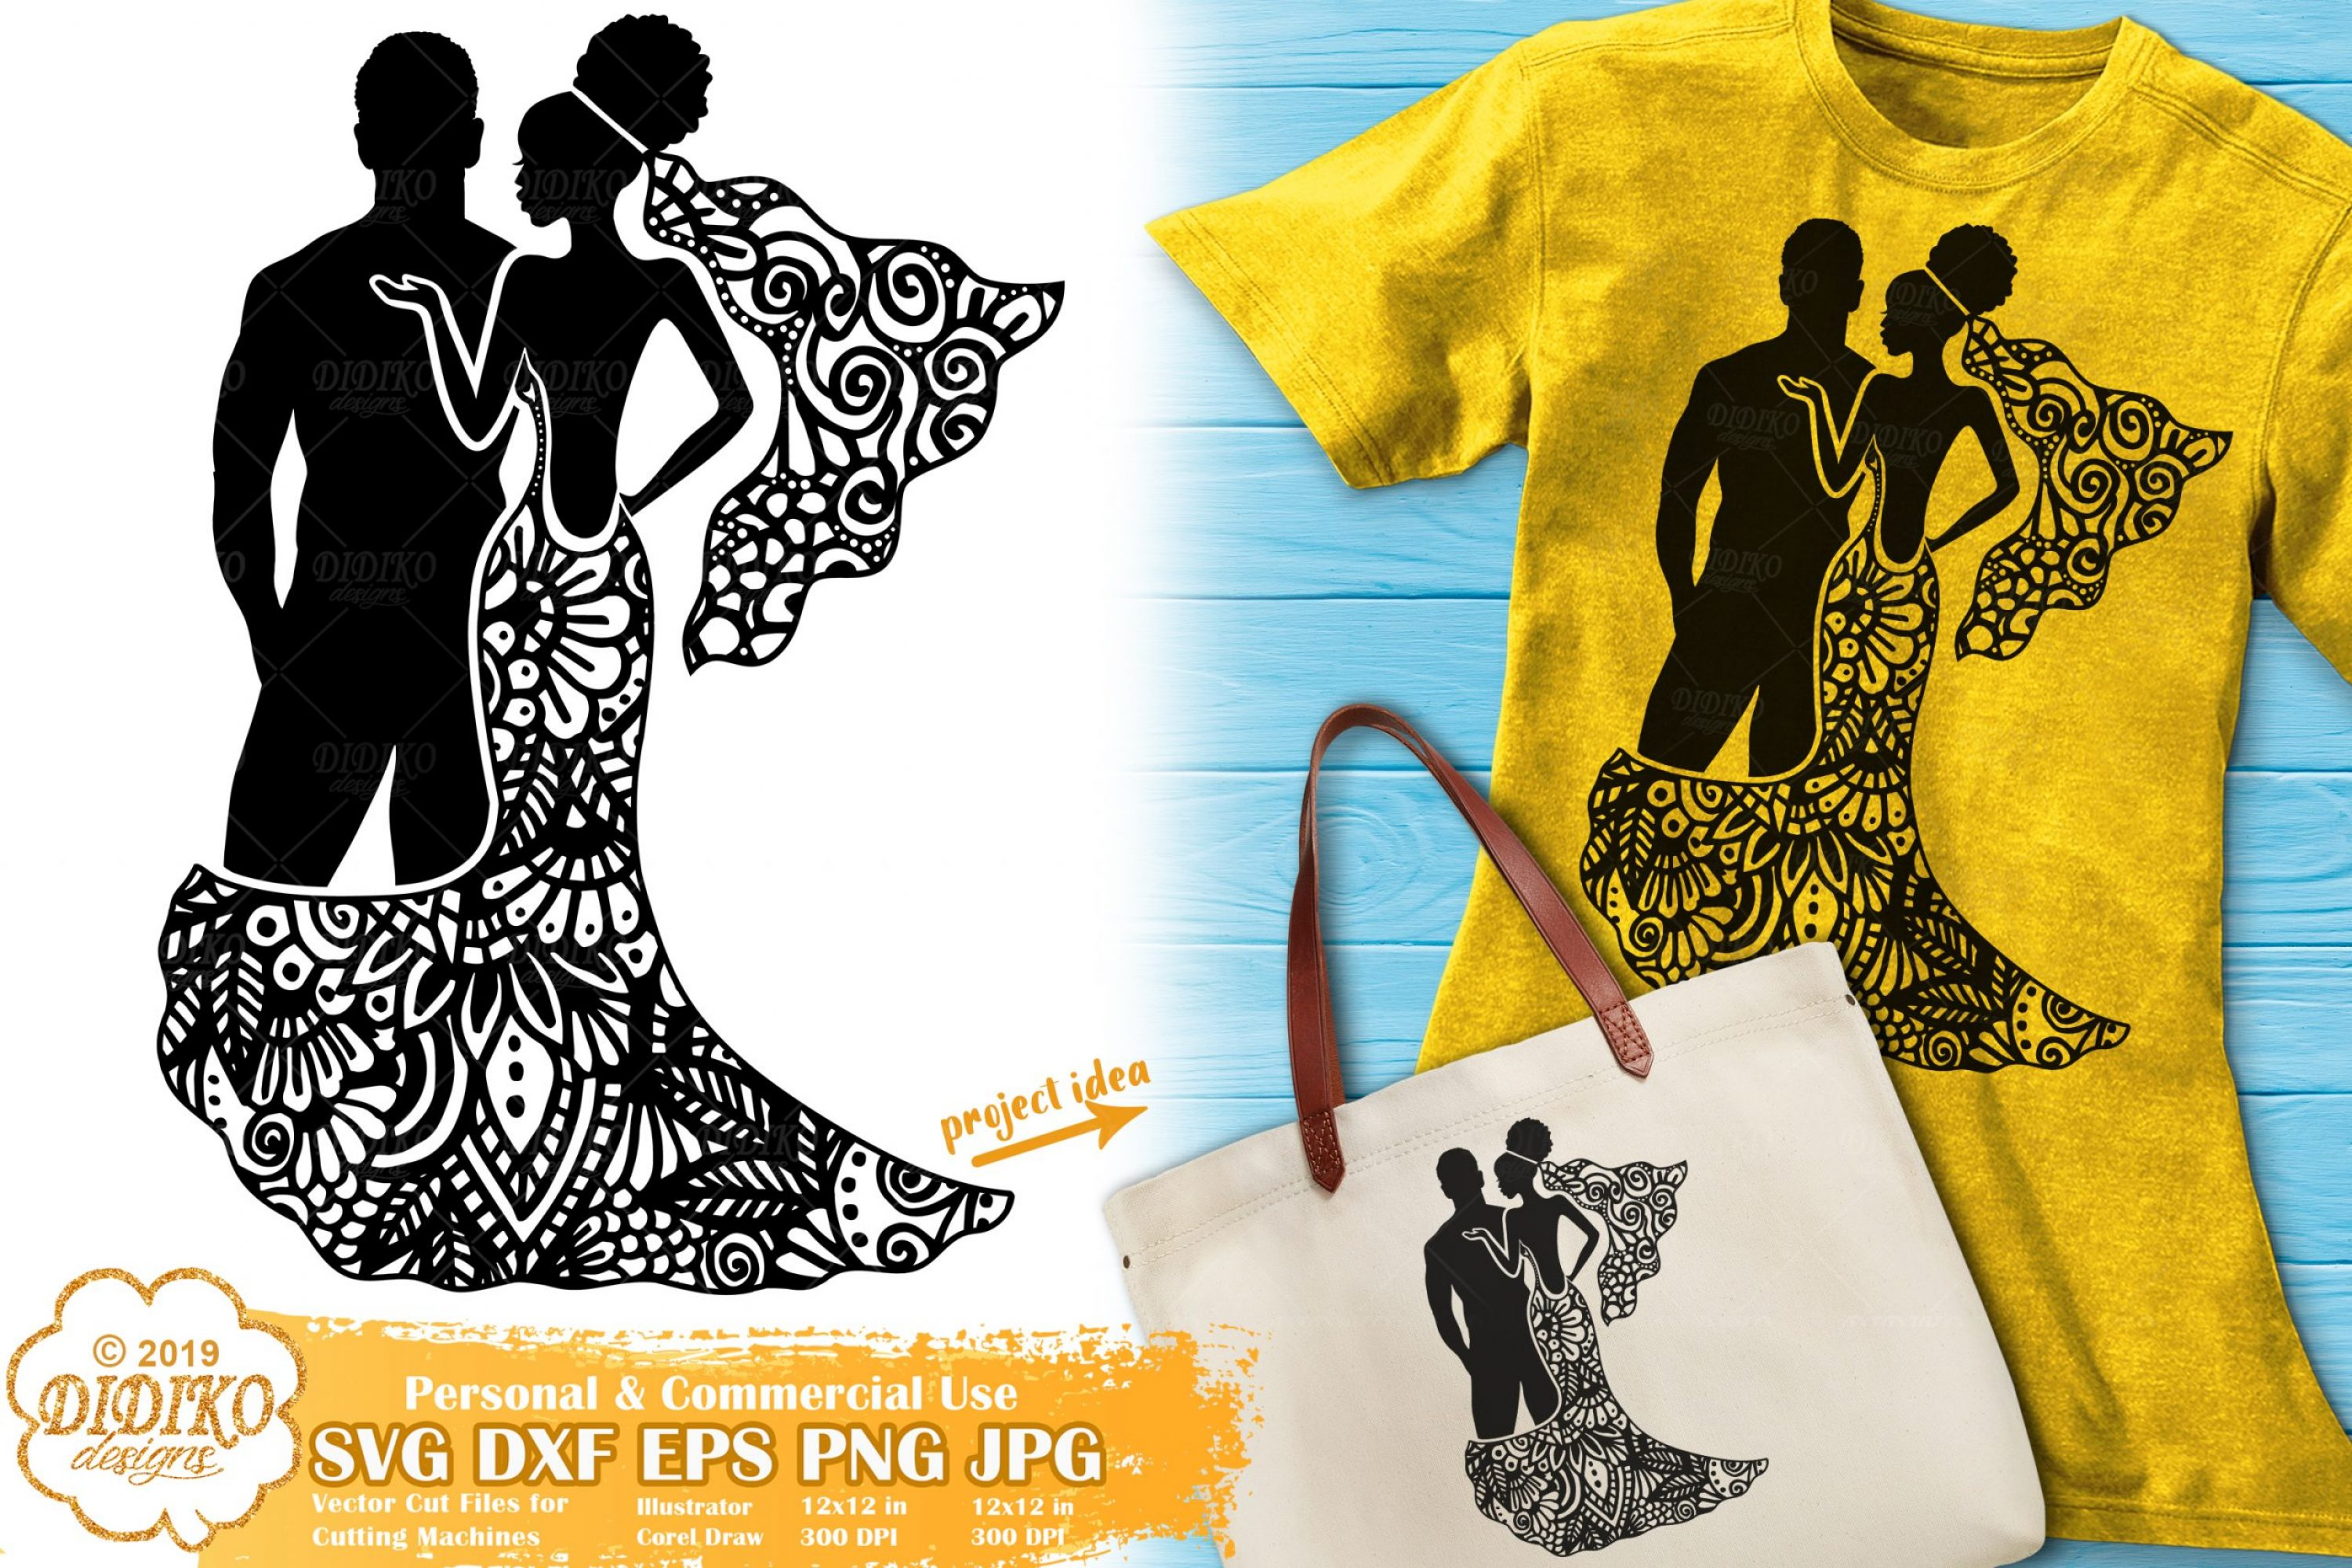 Wedding SVG #1 | Zentangle SVG | Bride SVG Cut file